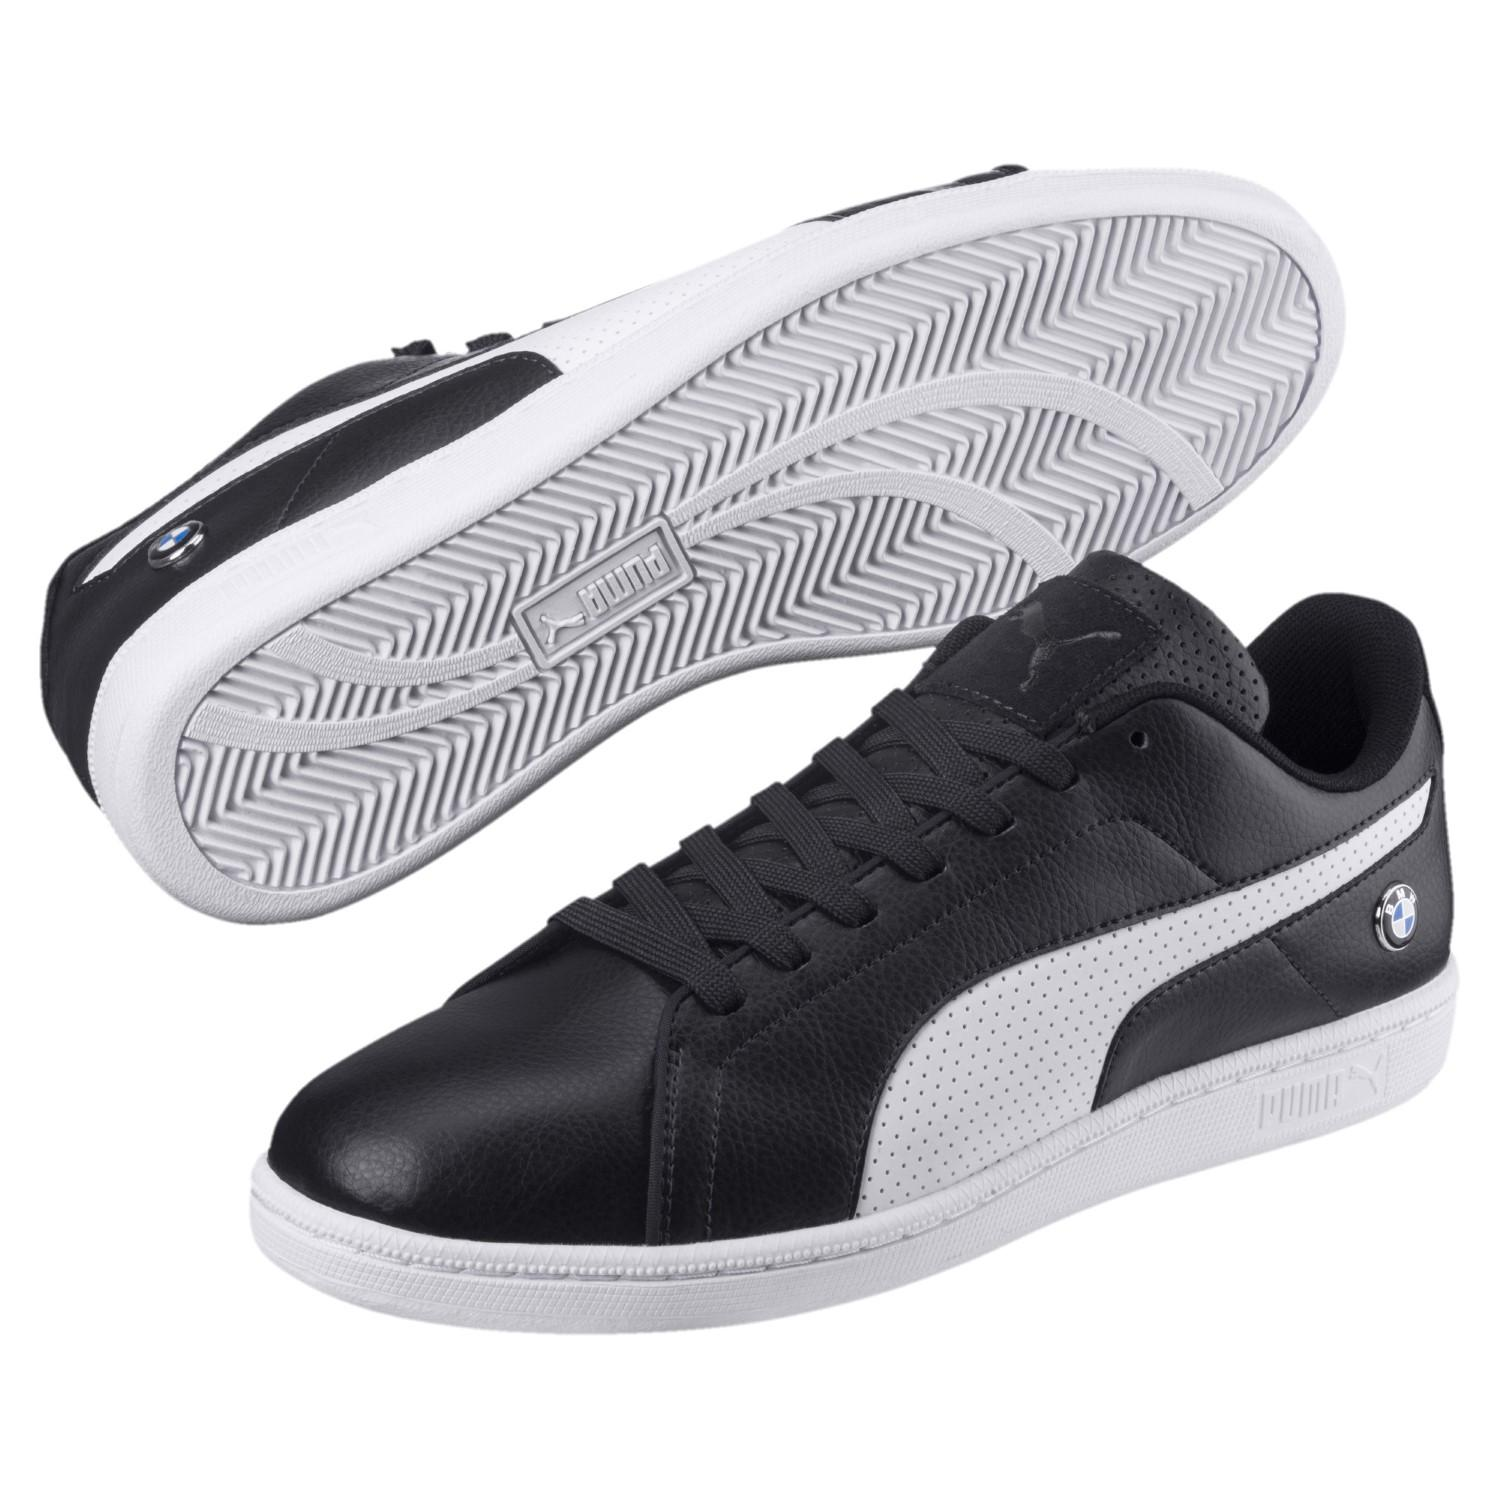 Lyst - PUMA Bmw M Motorsport Court Perf Sneakers for Men 304ae8d8c